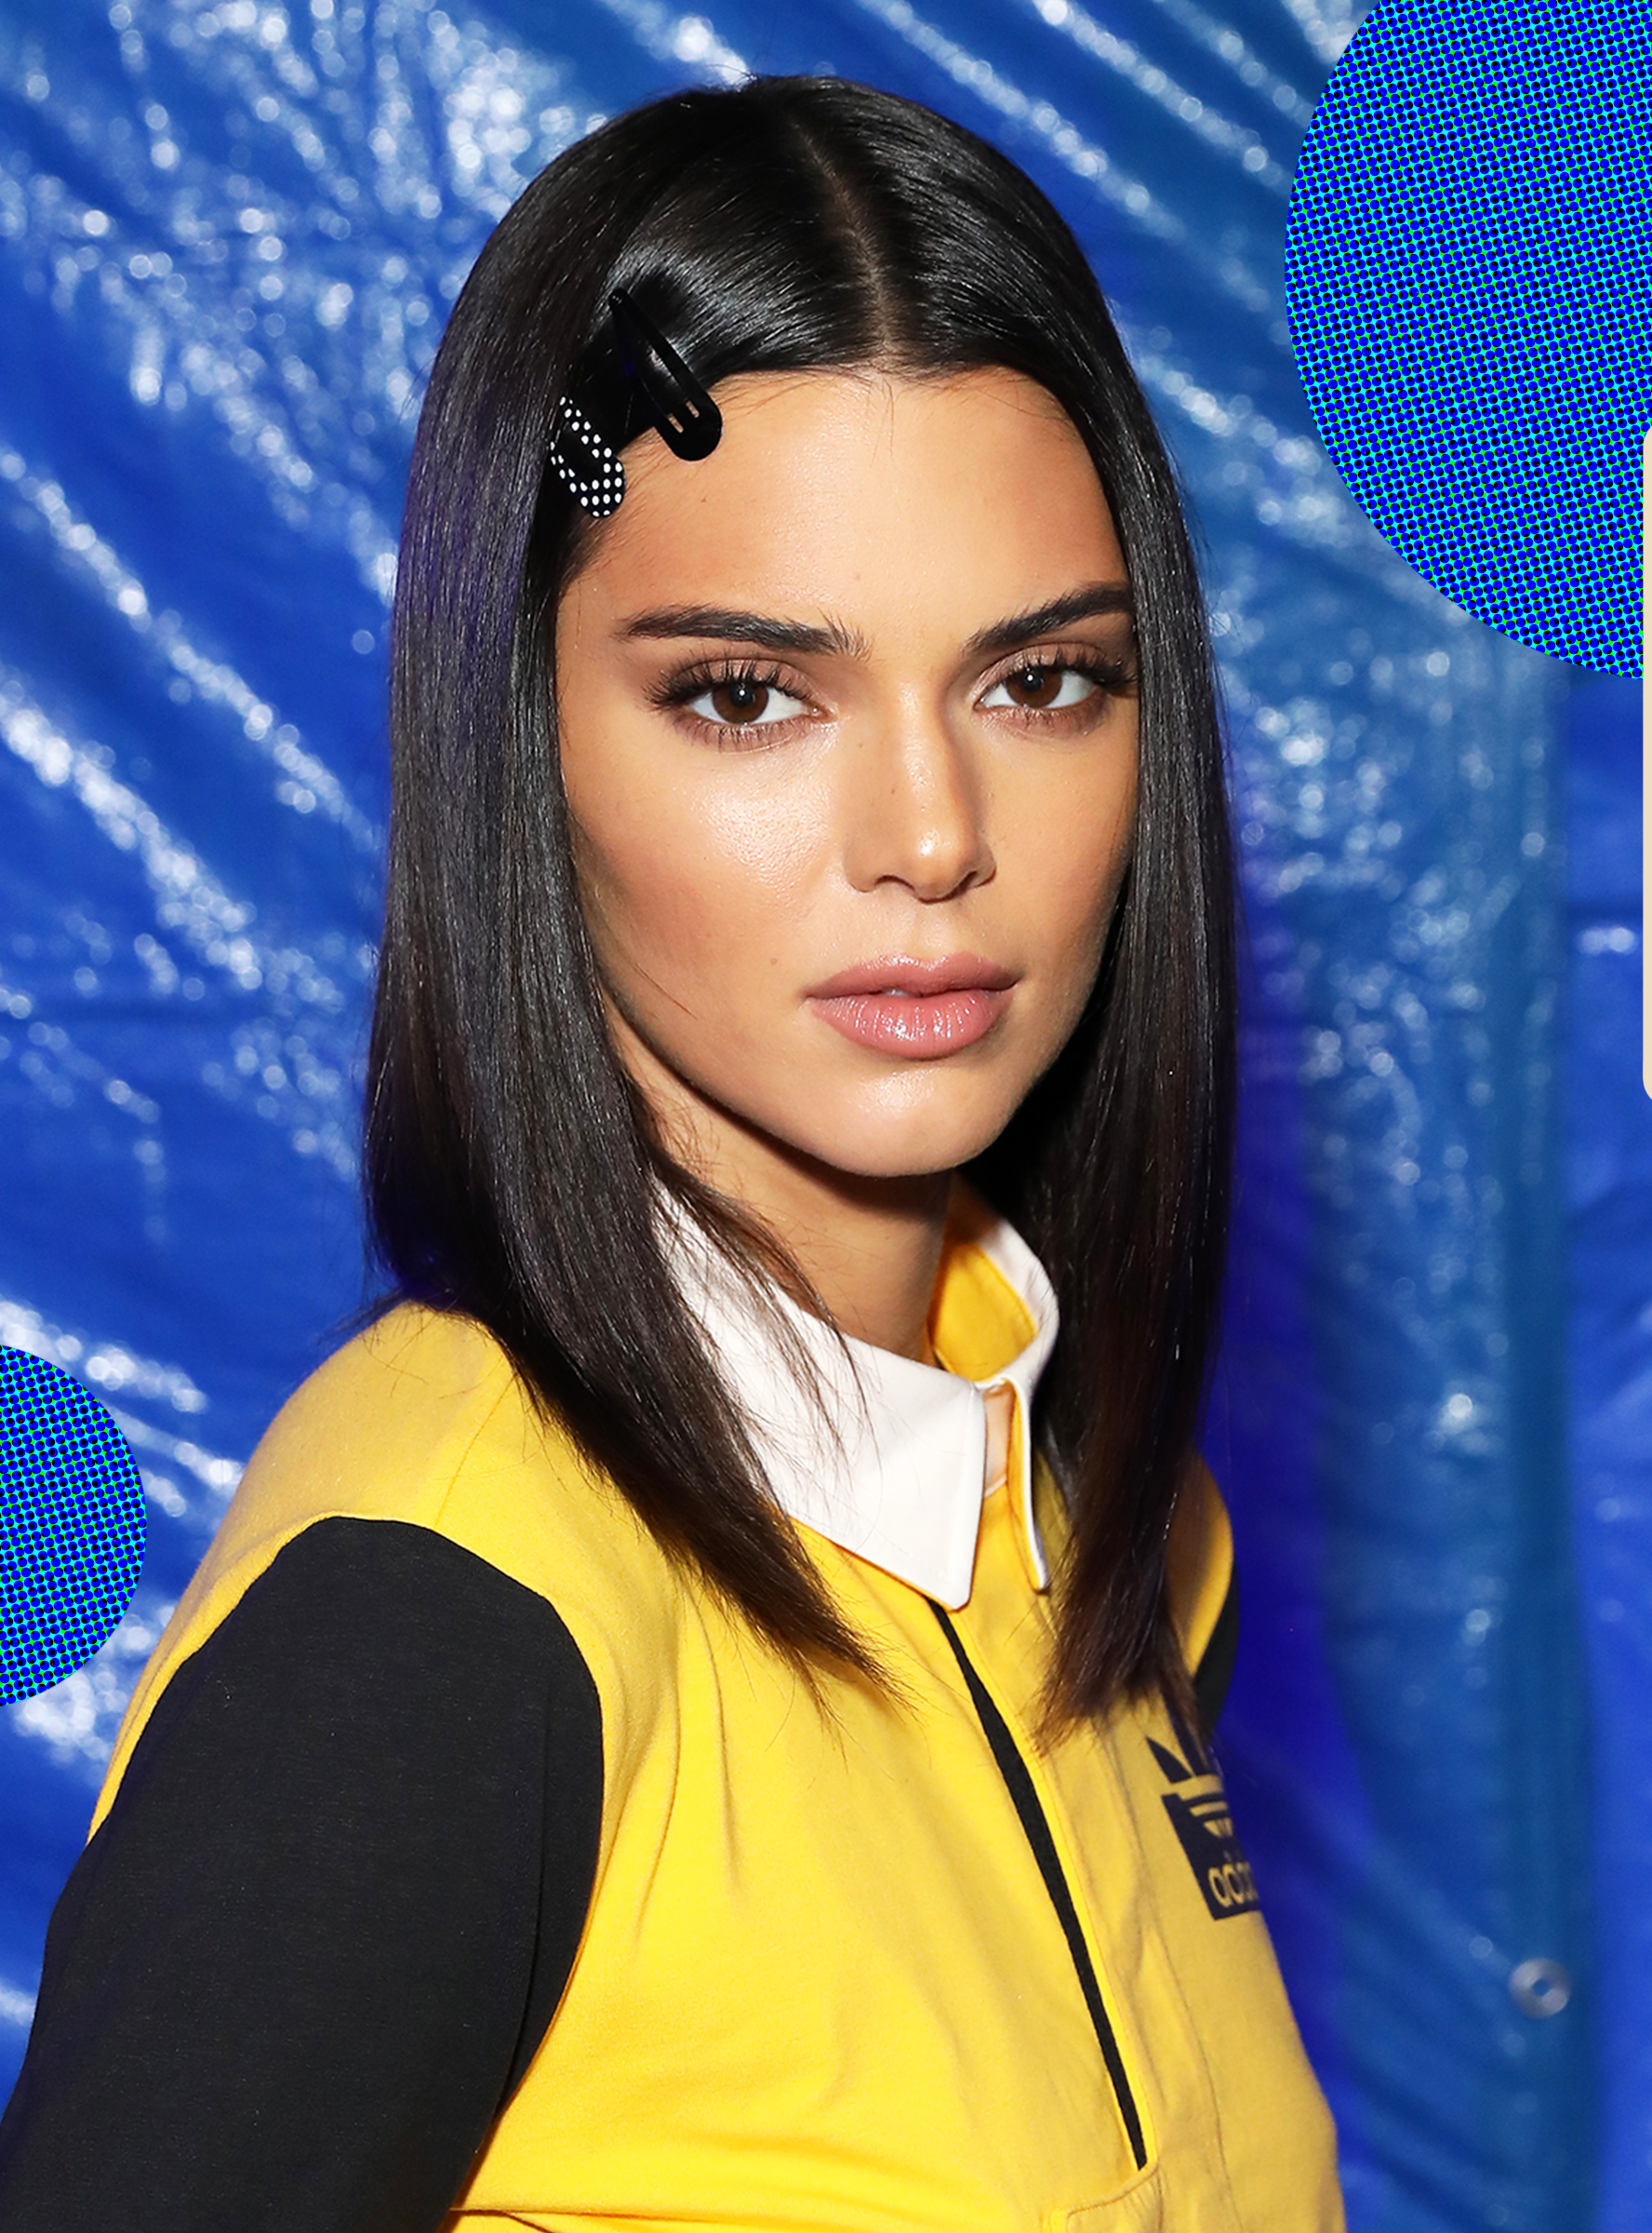 Kendall Jenner S Fyre Fest Instagram May Have Actually Changed Influencer Culture Kendall Jenner Hair Kendall Jenner Makeup Jenner Hair